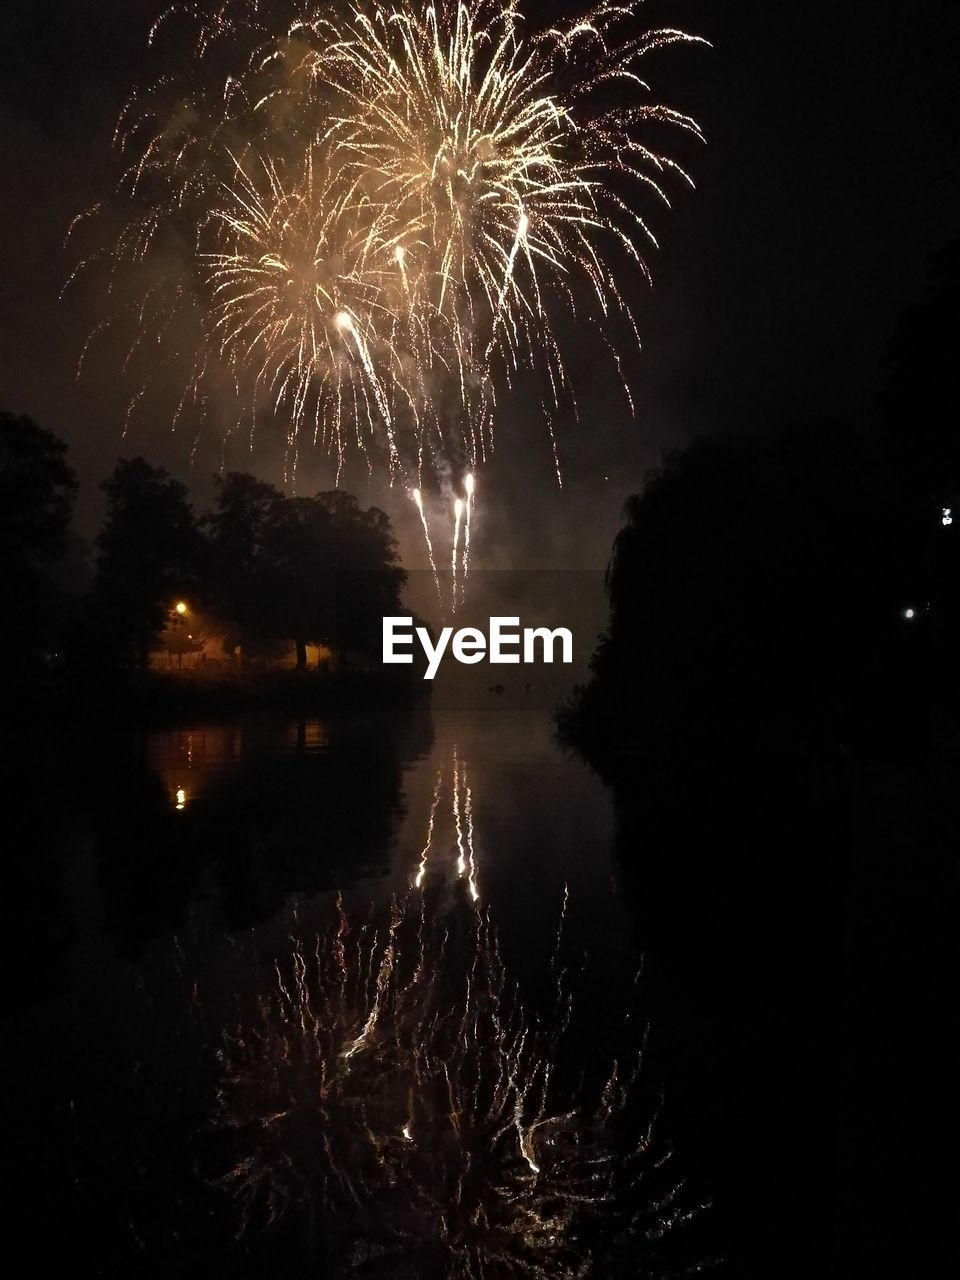 night, firework display, firework - man made object, exploding, illuminated, sky, celebration, reflection, silhouette, water, long exposure, arts culture and entertainment, outdoors, low angle view, no people, firework, tree, scenics, nature